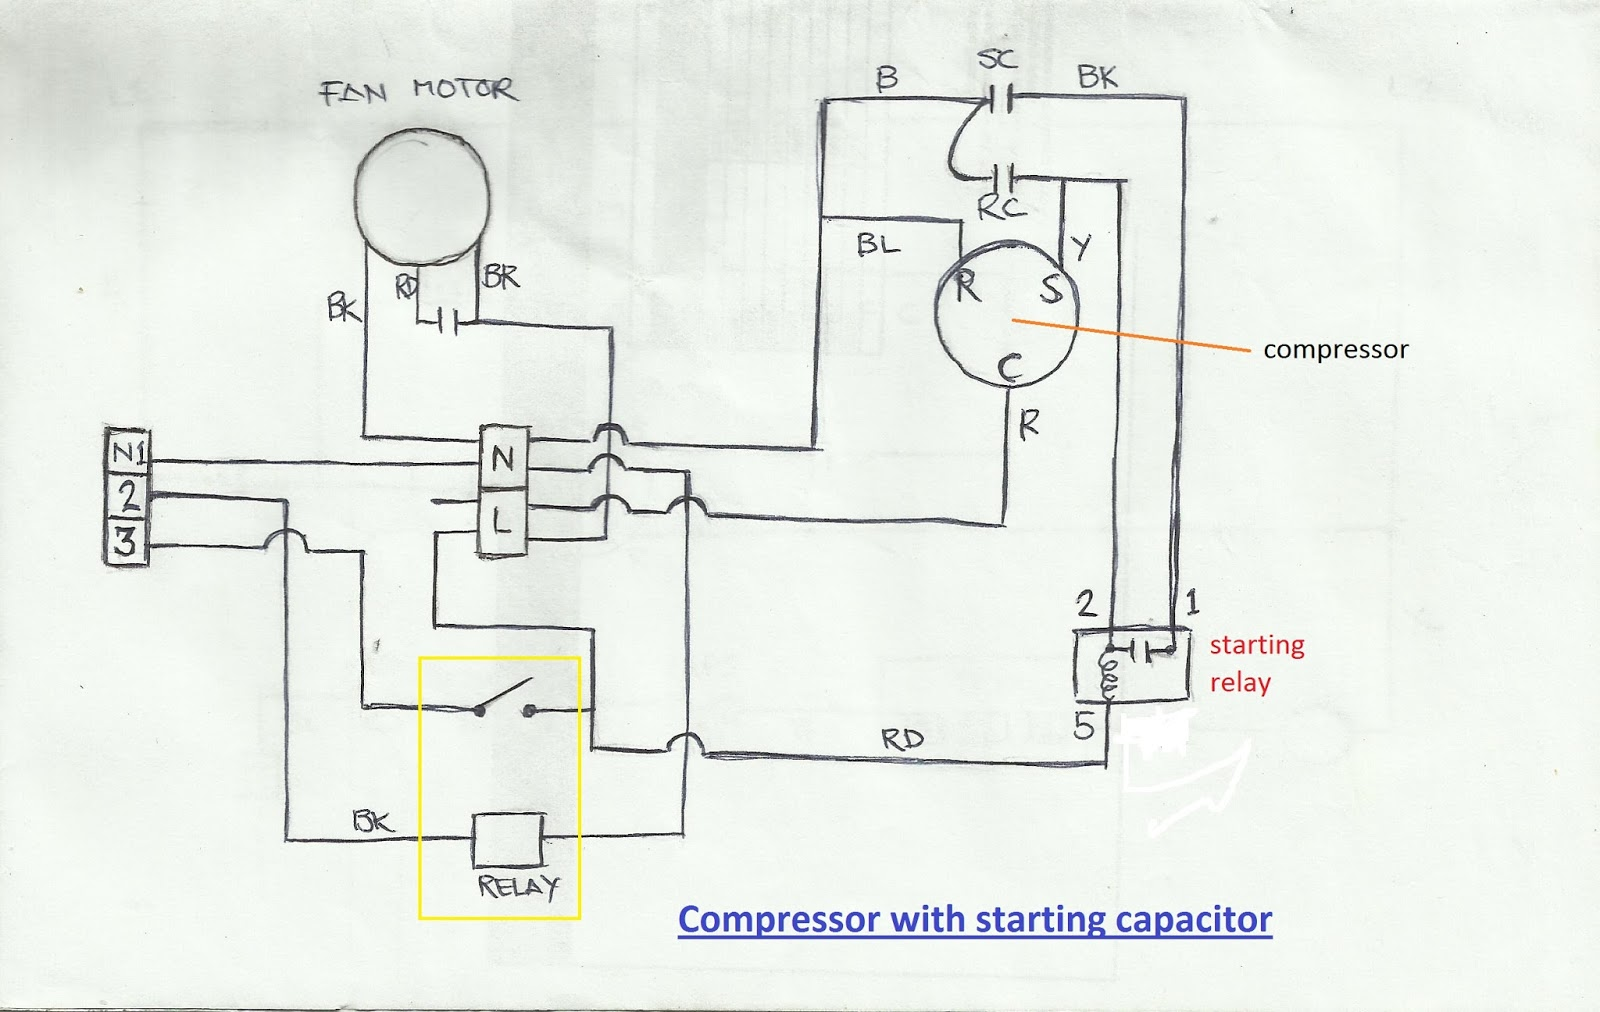 Hard Start Capacitor Wiring Diagram Deutz Alternator Carrier Get Free Image